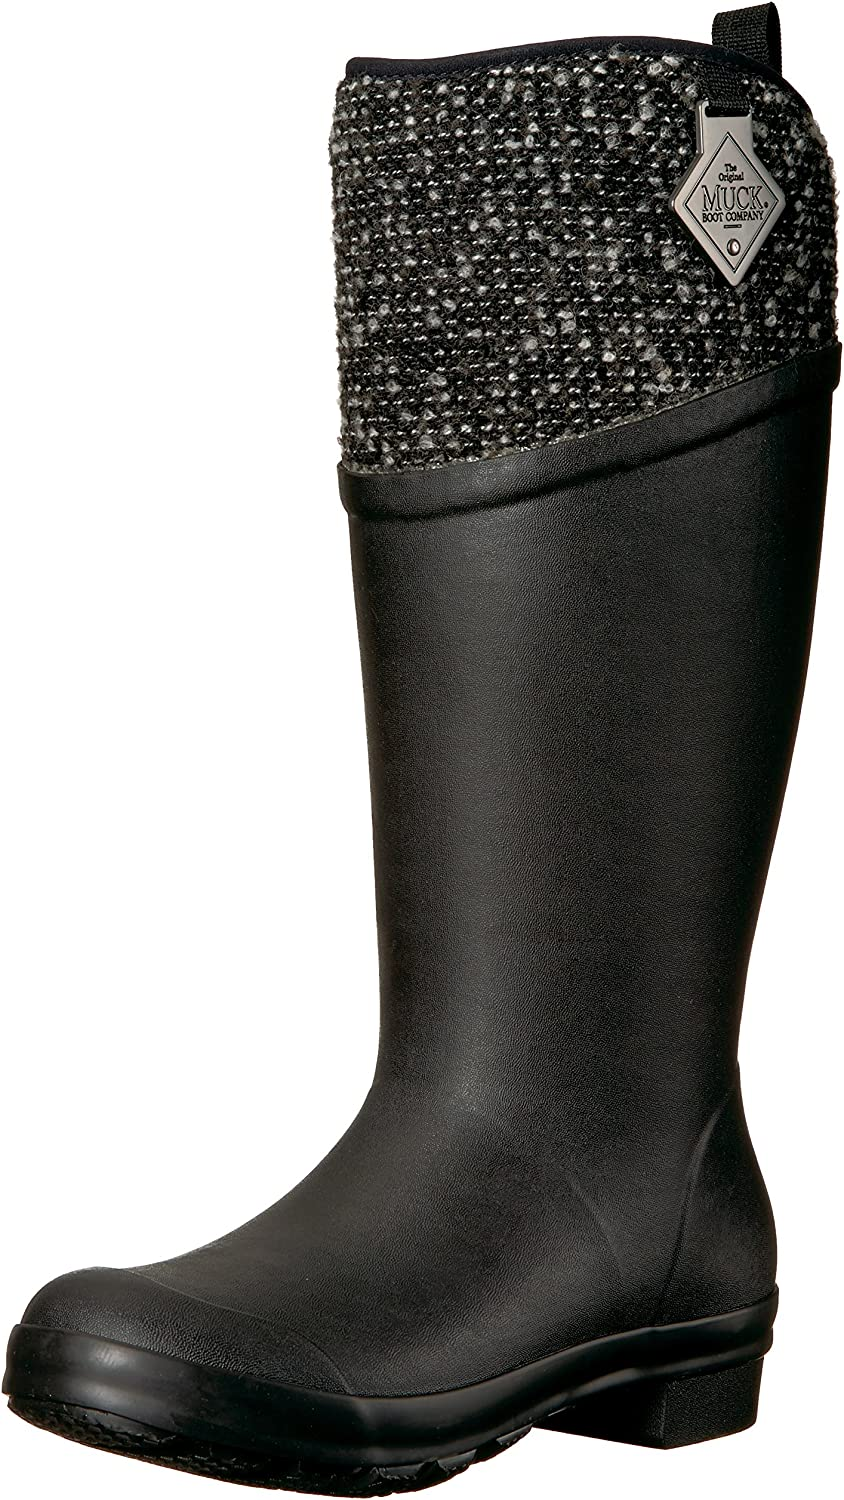 Muck Boot Company Large discharge sale 5 ☆ popular Women's Supreme Tremont Work